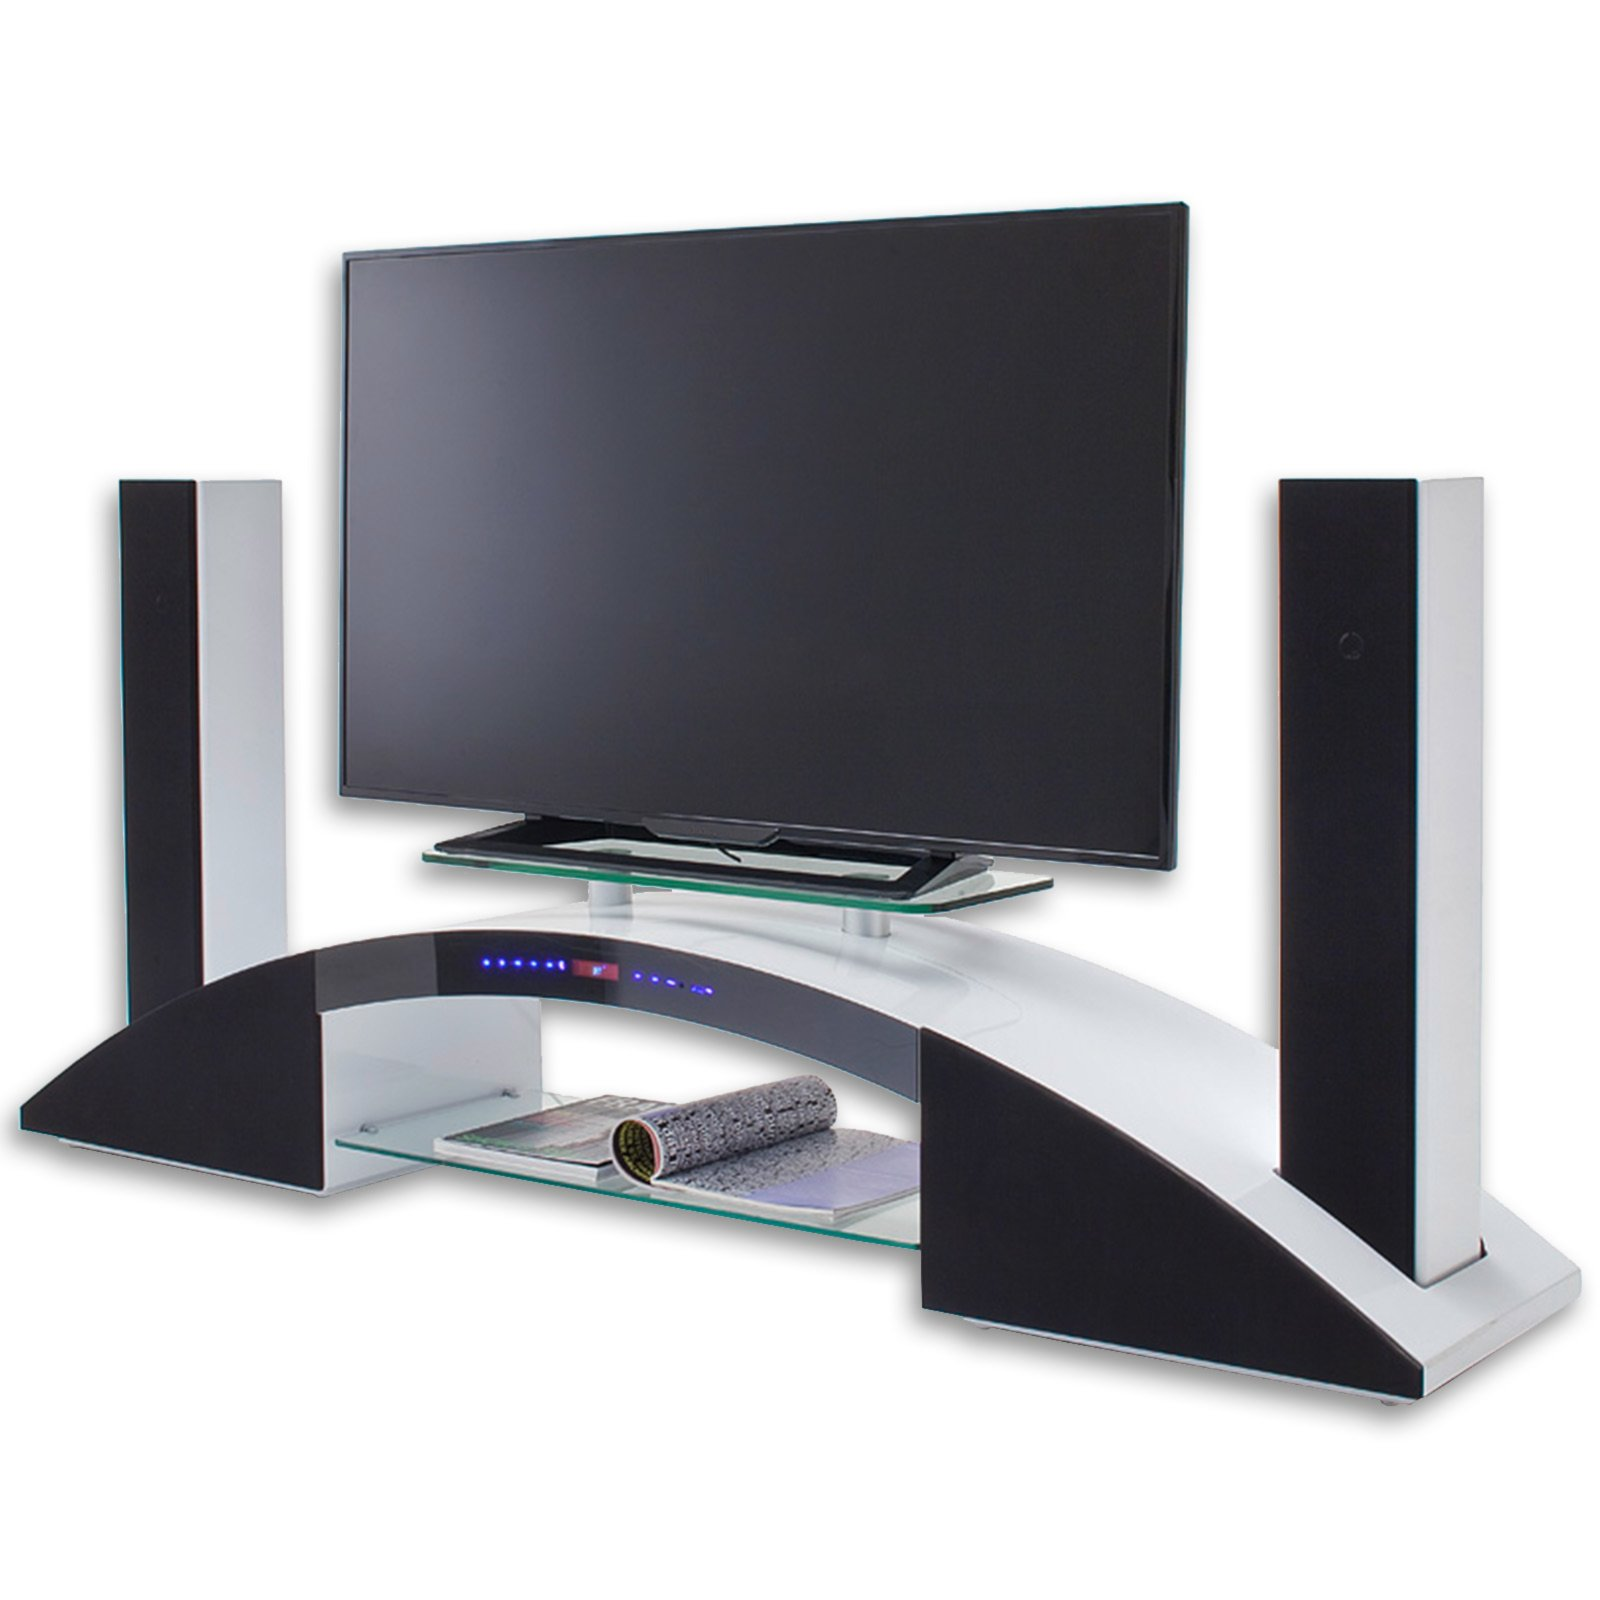 tv rack arc 2 wei hochglanz mit soundsystem tv racks tv hifi m bel m bel roller. Black Bedroom Furniture Sets. Home Design Ideas